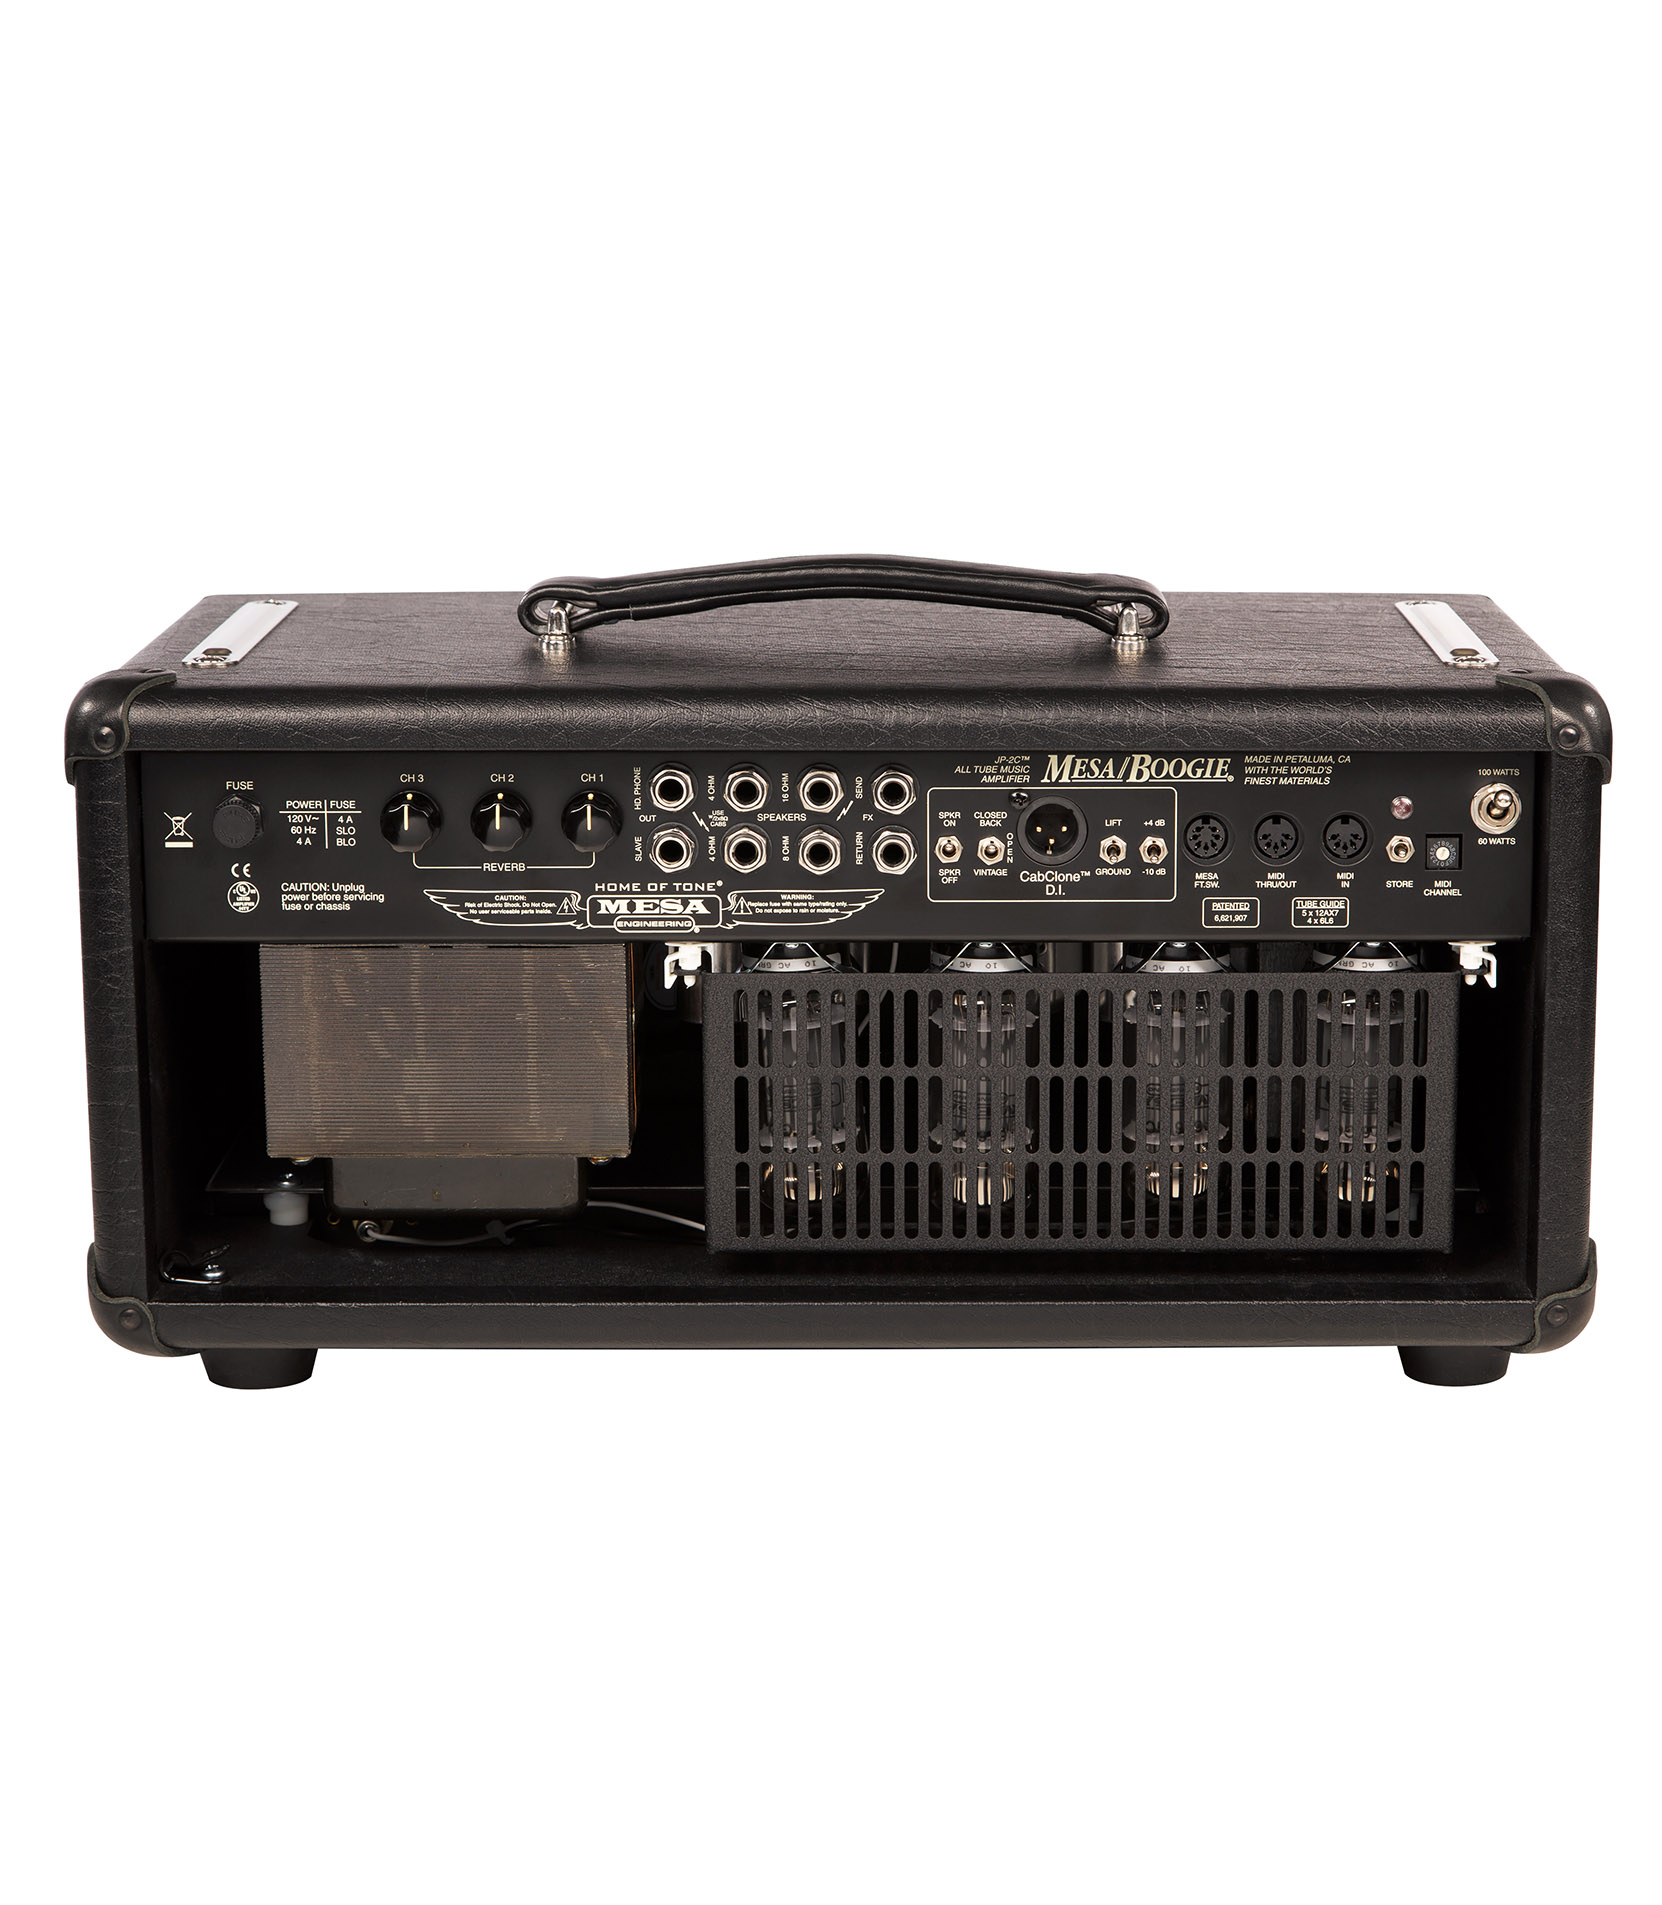 Mesaboogie - 2.M2CX.230R.BB - Melody House Musical Instruments